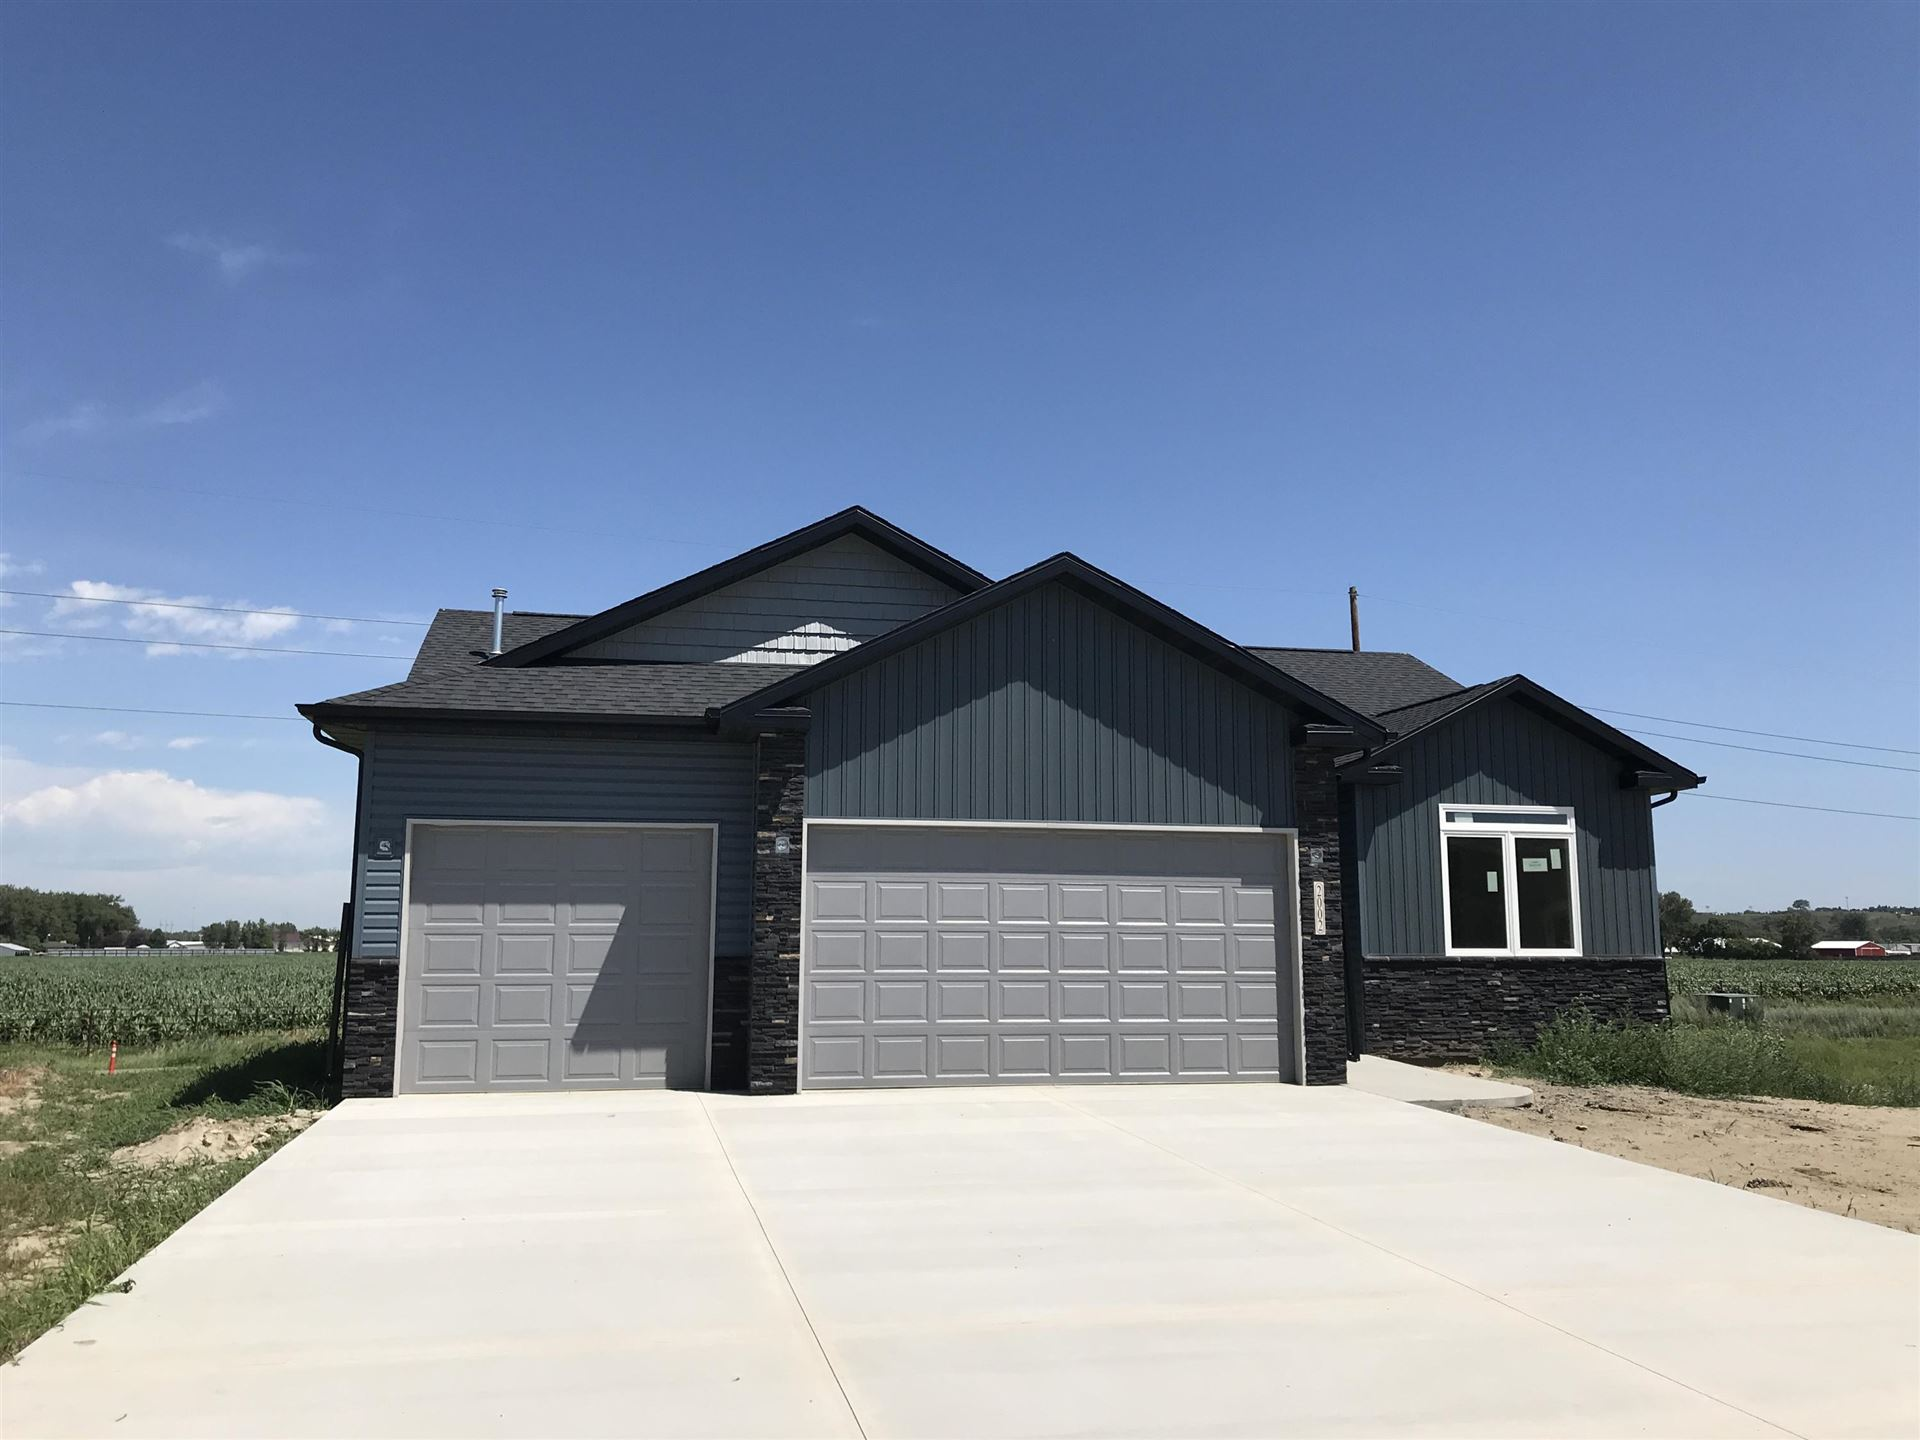 2002 34th Avenue SE, Mandan, ND 58554 - #: 407686